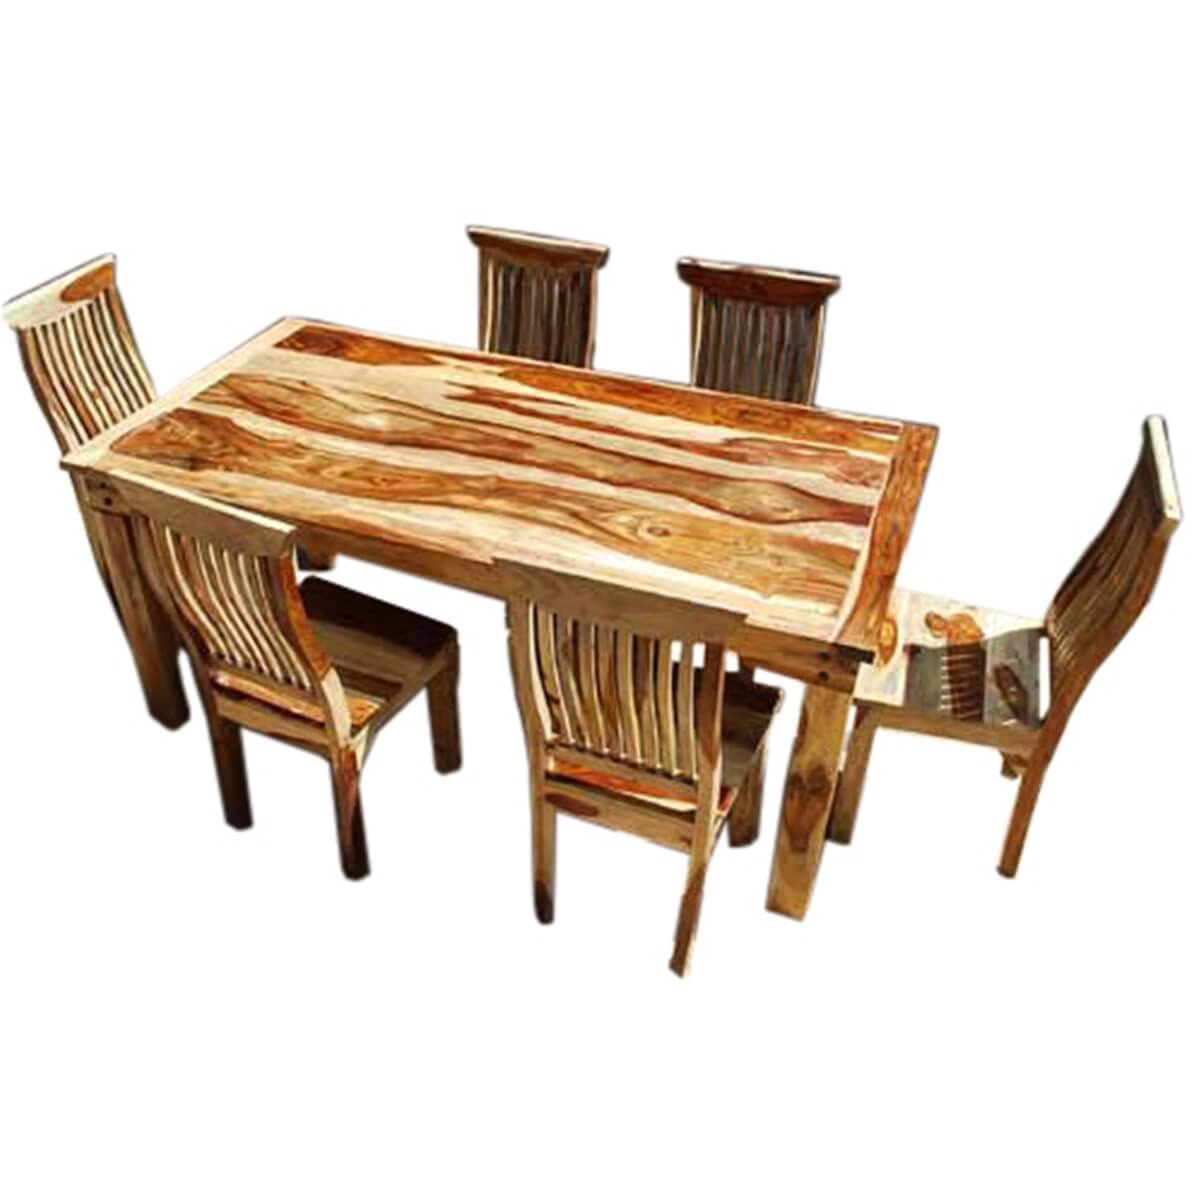 Solid Wood Kitchen Tables: 7 Piece Formal Dining Room Kitchen Table Chair Set Rustic